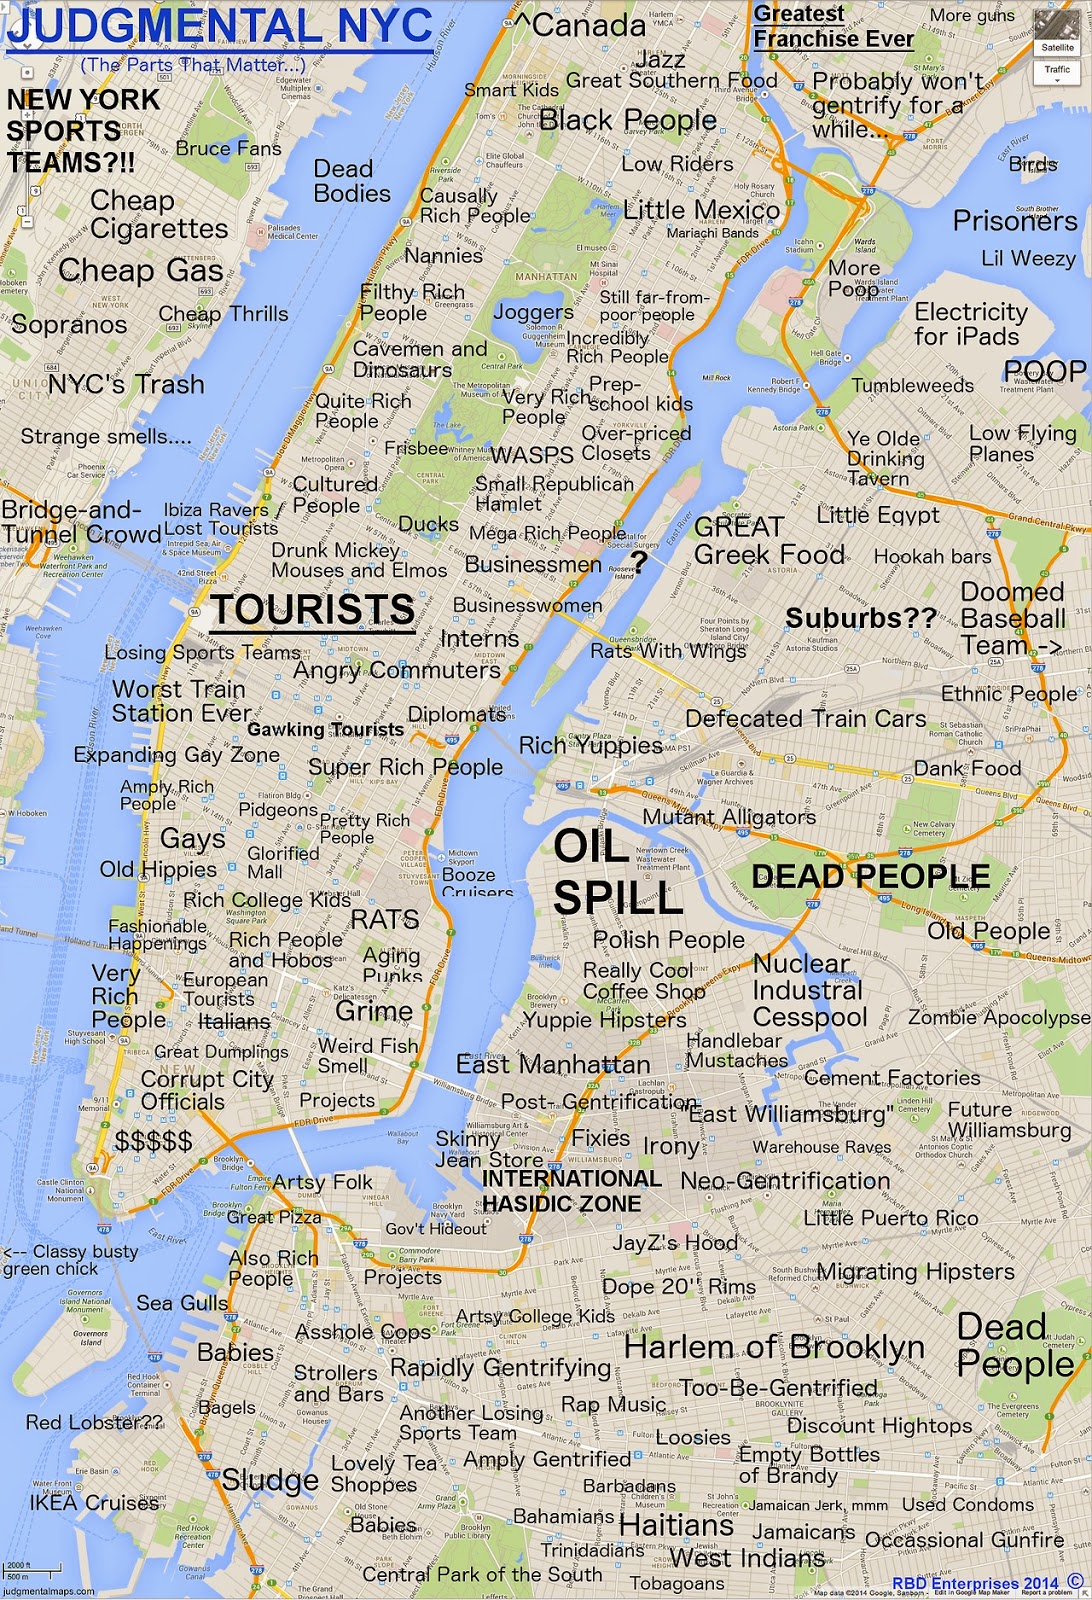 Roosevelt Islander Online Judgmental Map Of New York City - New york city map with neighborhoods